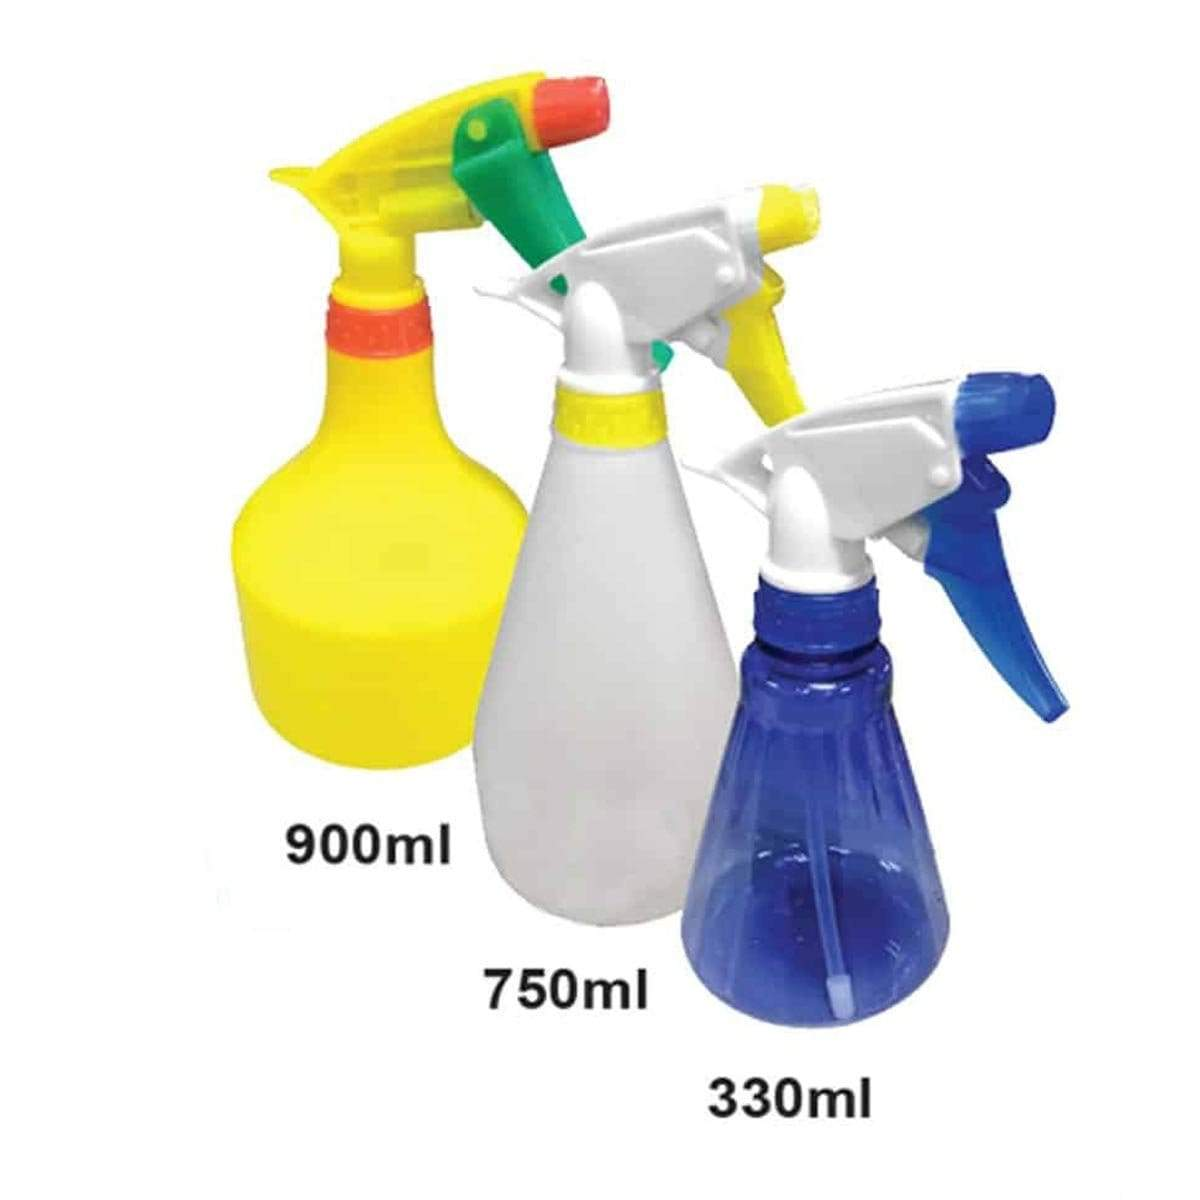 Aneka Pump Garden Spray Mist Hand Trigger Water Sprayer 900ml ITS900